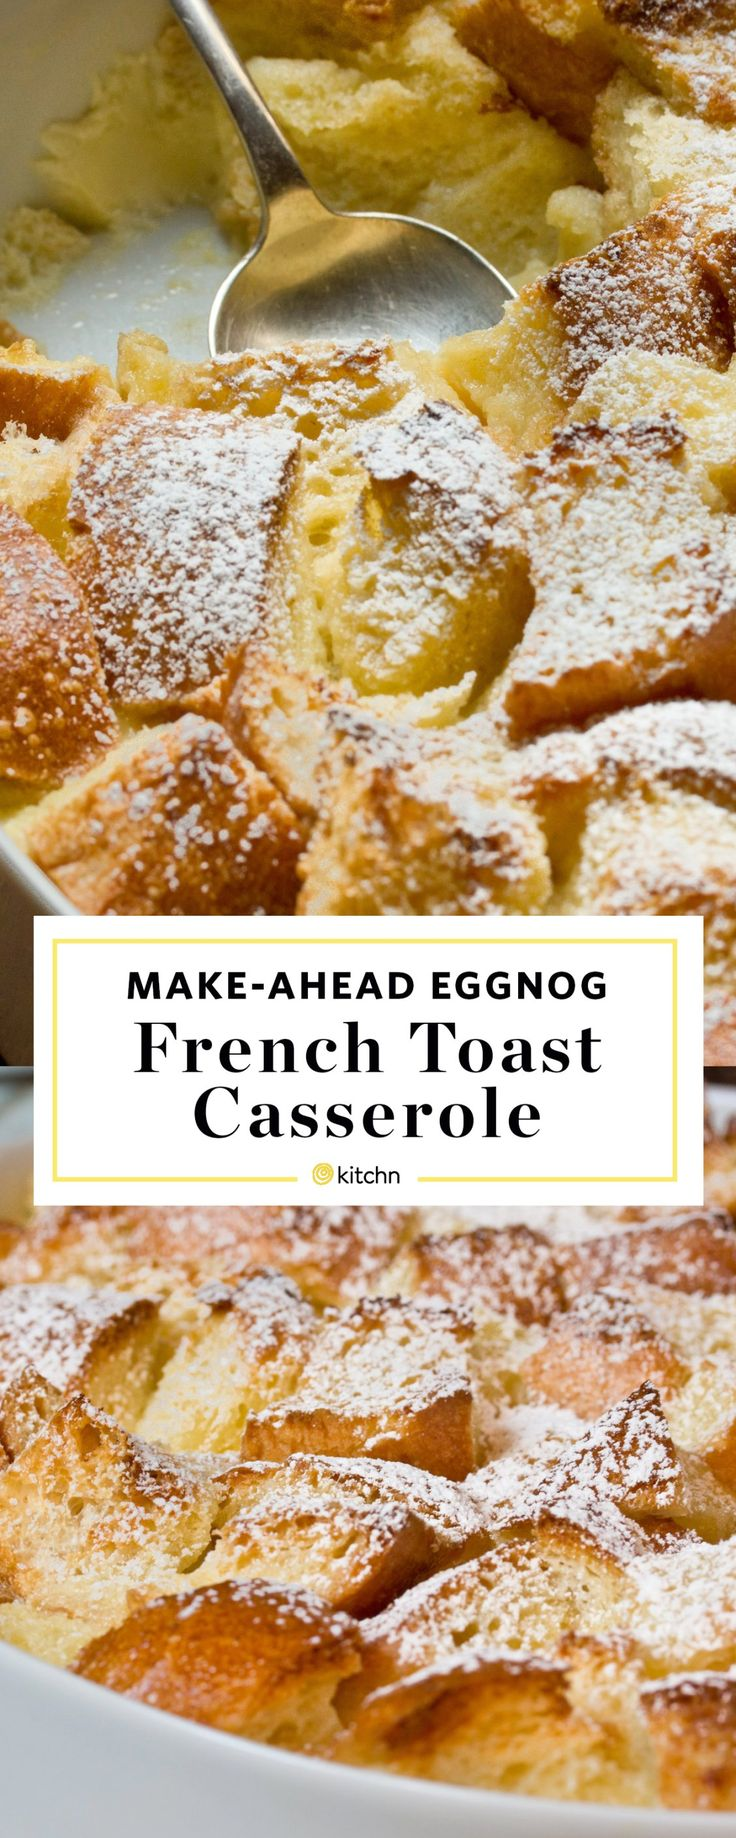 Make Ahead Eggnog French Toast Casserole Recipe. This easy overnight breakfast bake is perfect if you're looking for ideas and recipes for Christmas morning or brunch for kids. Breakfasts for a crowd are so important for holidays. Made with bread (challah or brioche are nice), butter, eggs, milk, eggnog, sugar, bourbon or vanilla extract.